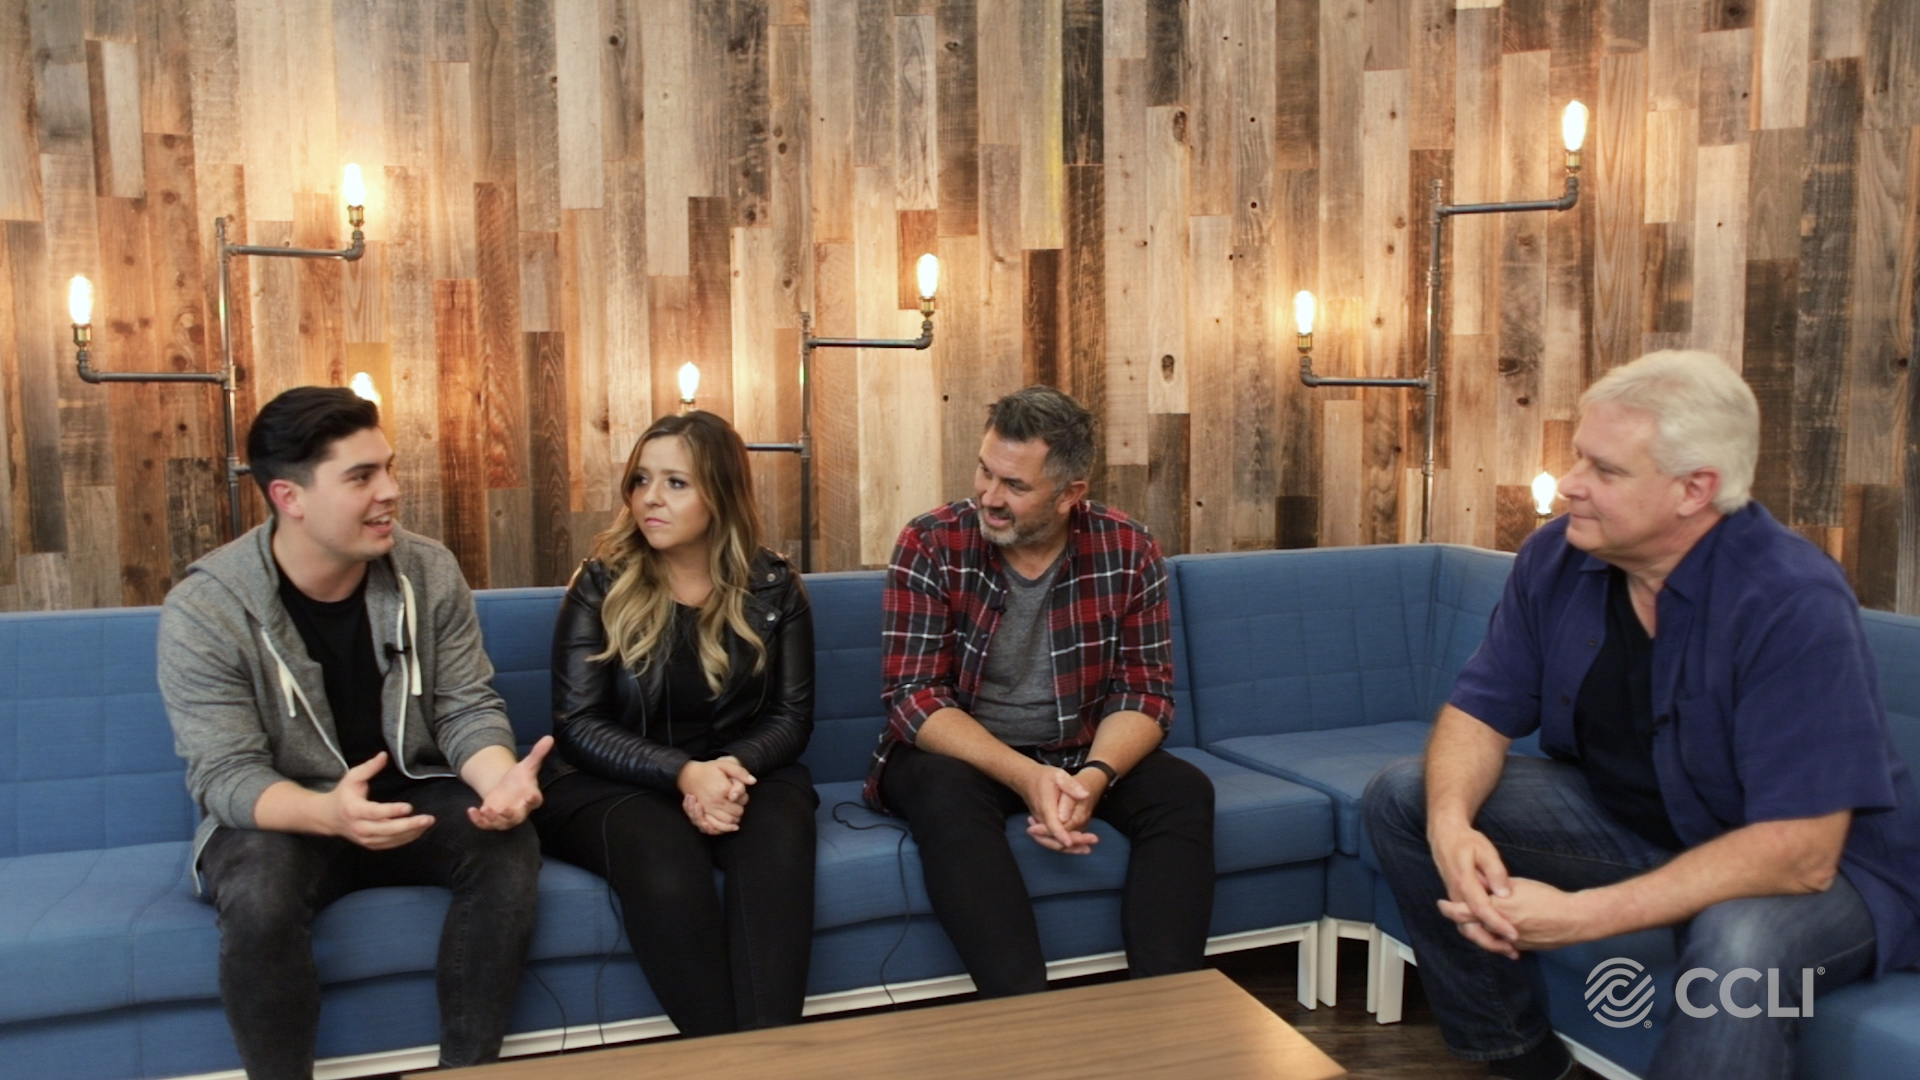 Our Conversation With Gateway Worship